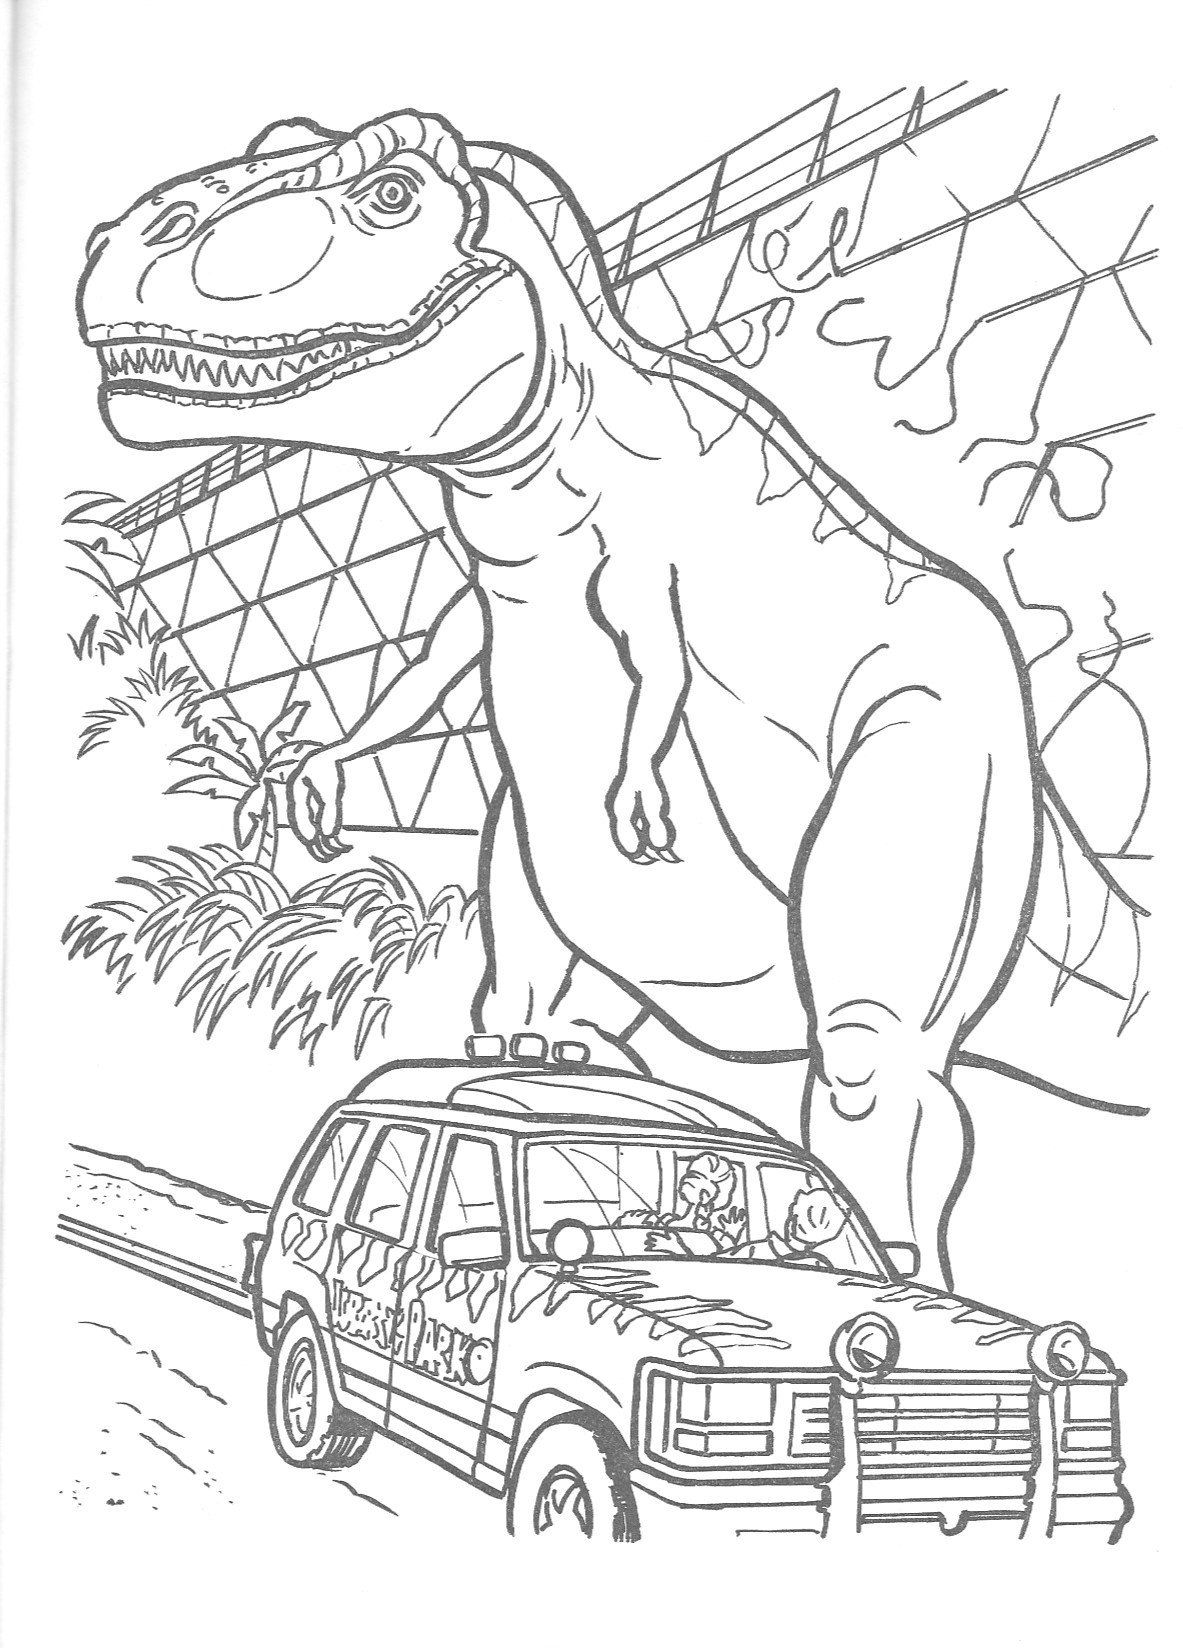 Coloring Pages Jurassic World Concept